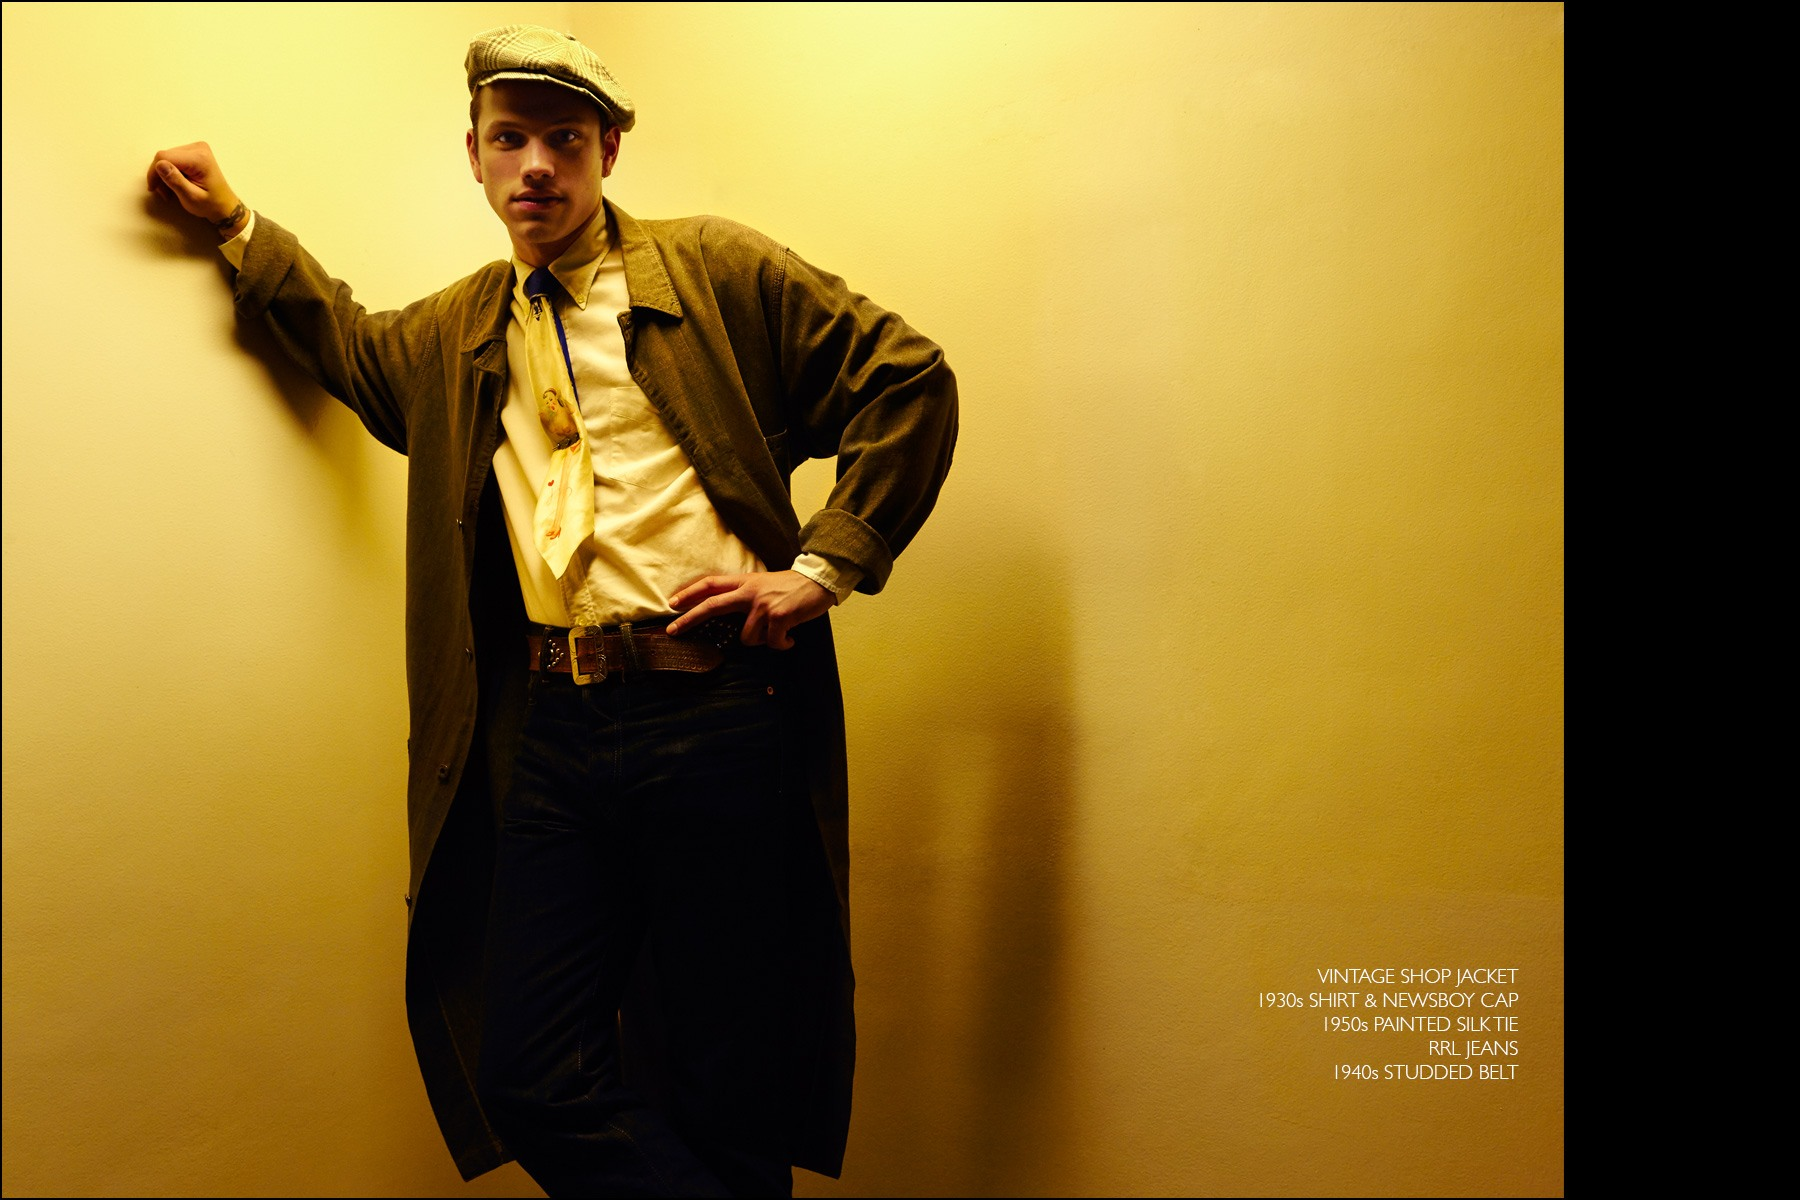 Rockabilly drummer Ben Heymann, from NYC band The Bothers, photographed in vintage menswear from New York showroom Dated Vintage. Photographed by Alexander Thompson for Ponyboy magazine NY.